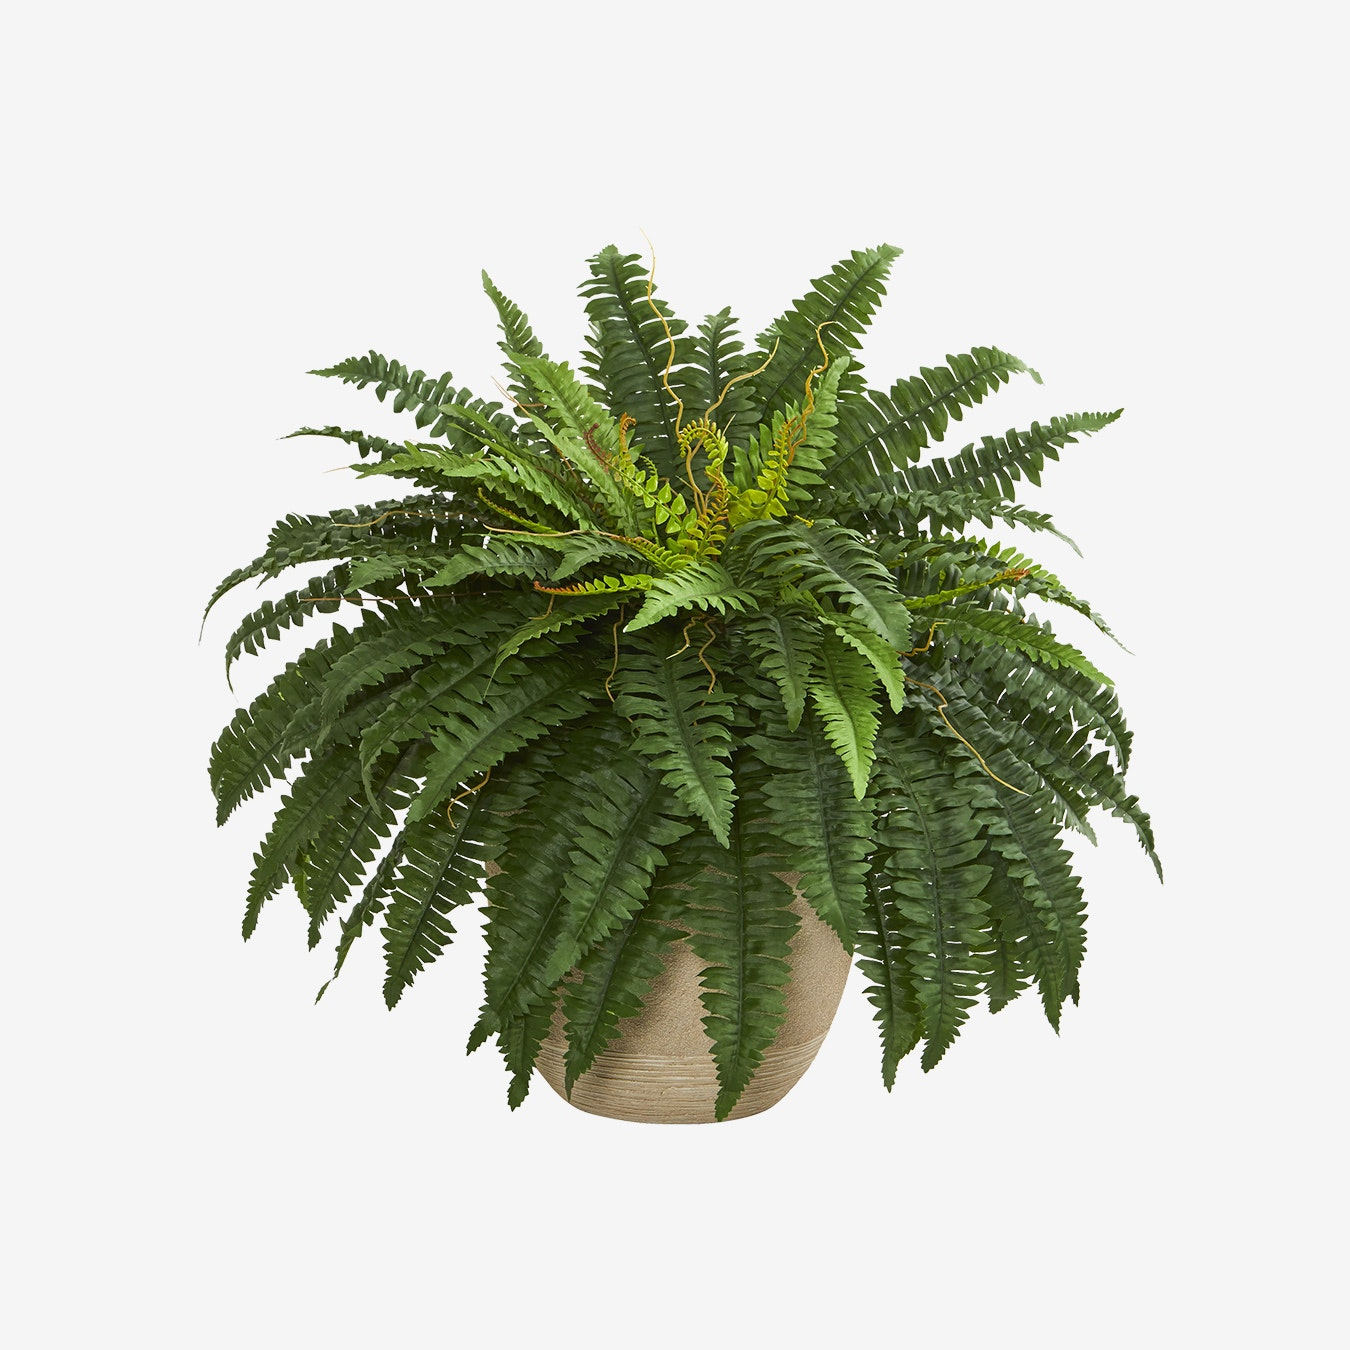 Boston Fern Artificial Plant In Sandstone Planter Green By Faux Foliage From Fy Fy